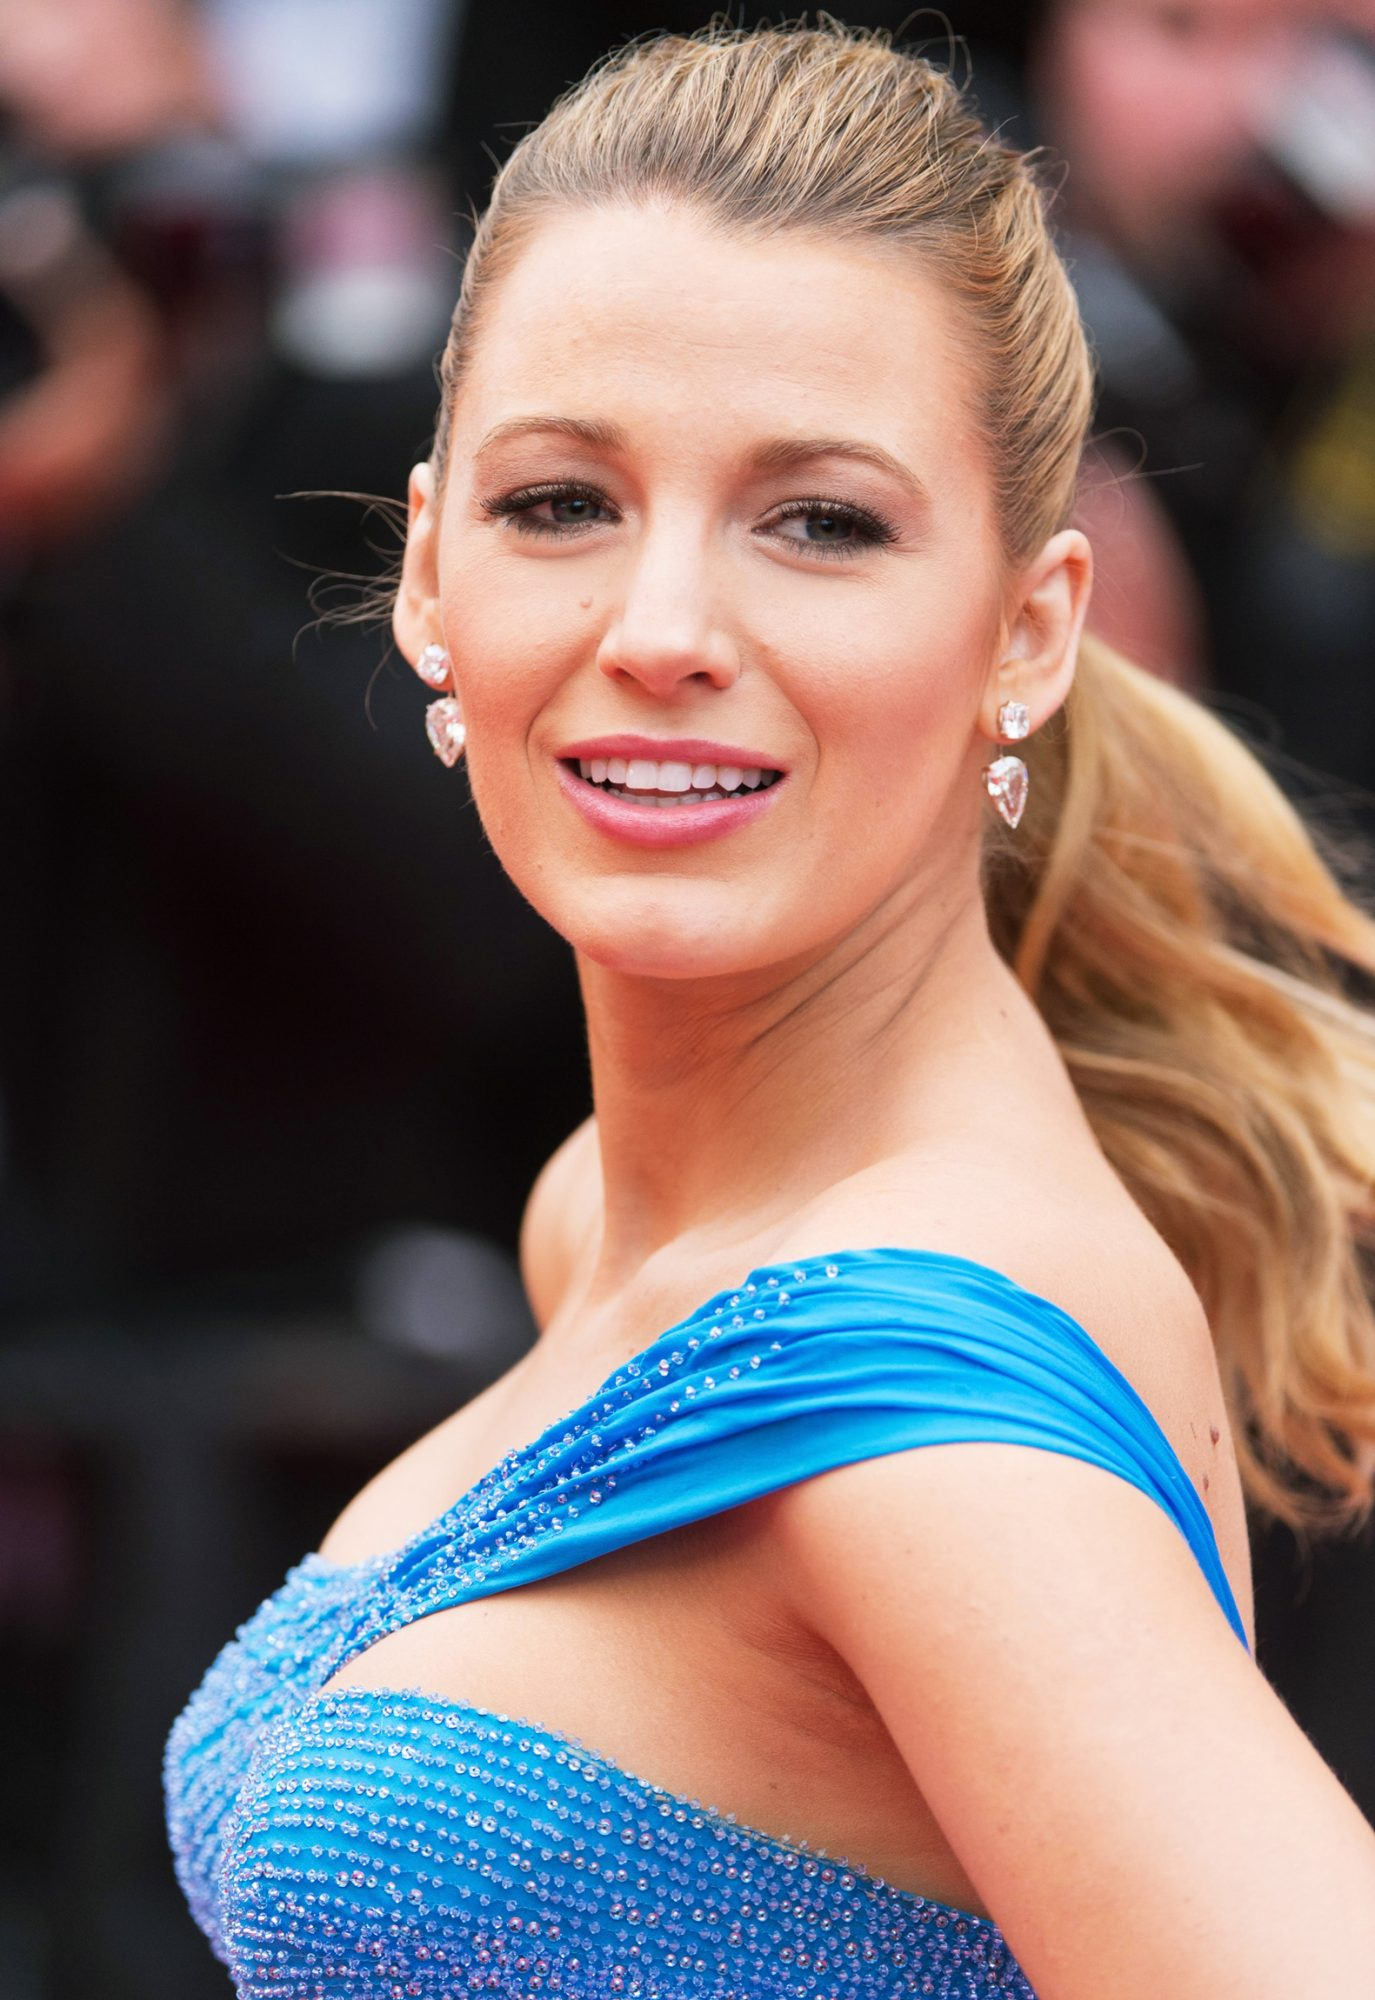 Blake Lively - 69th annual Cannes Film Festival at the Palais des Festivals on May 14, 2016